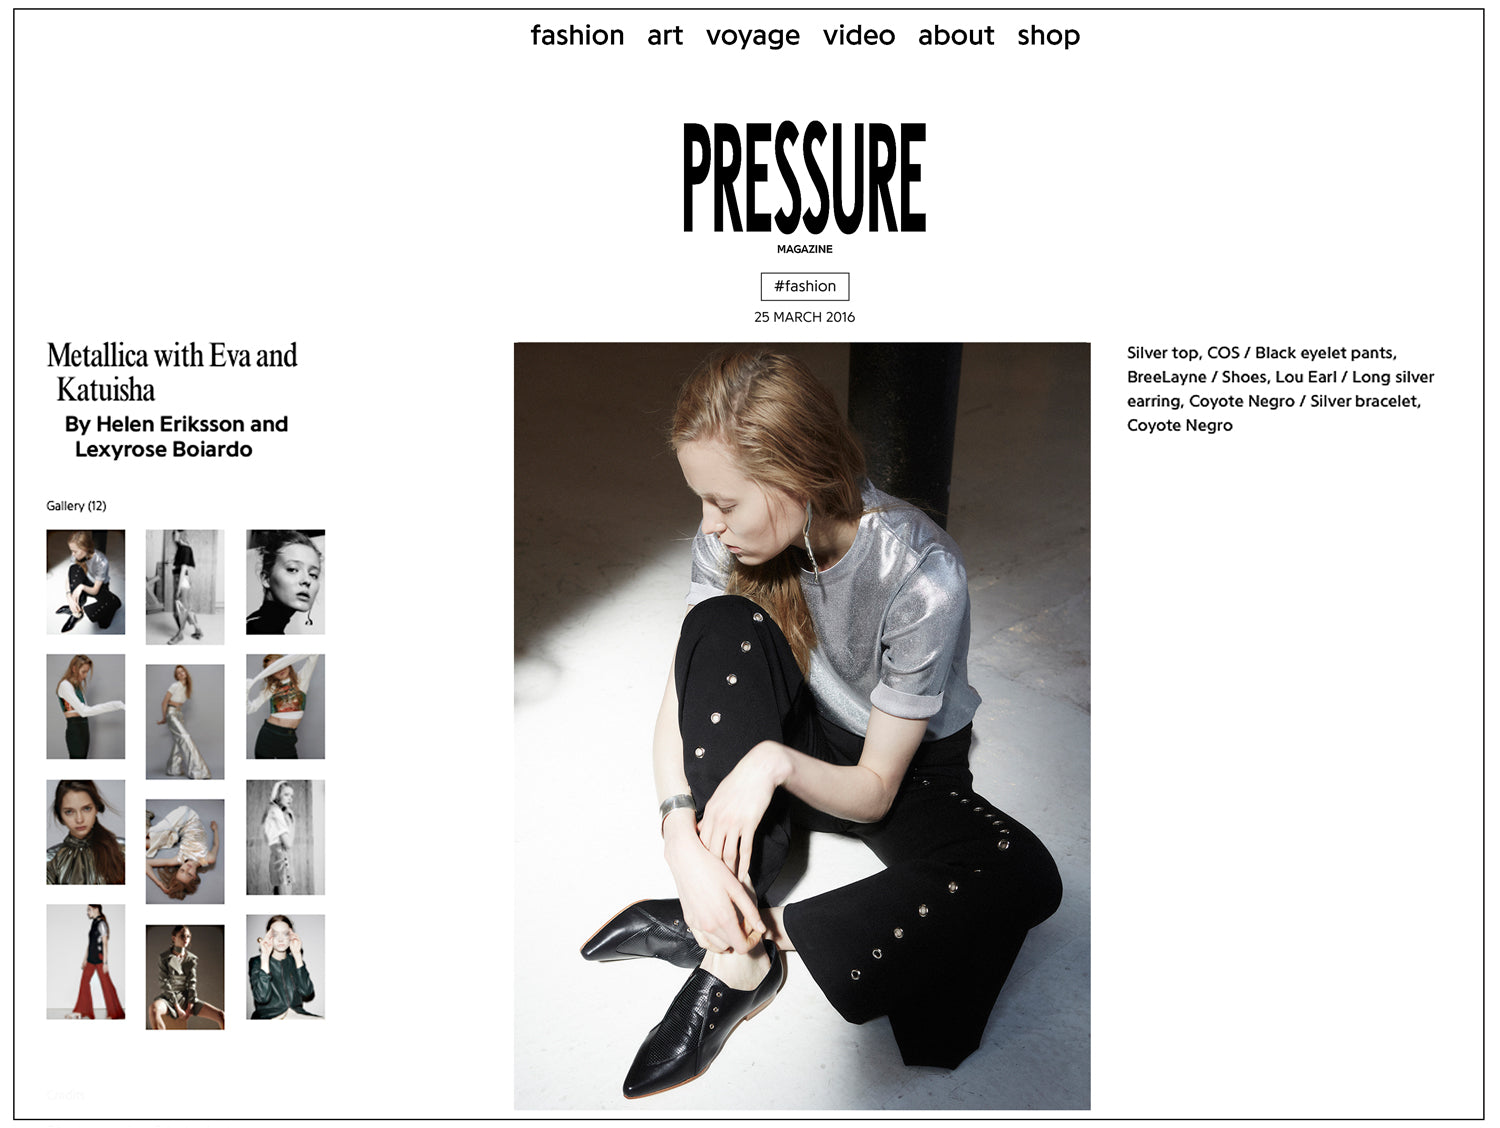 LOU.EARL Eleanor lace up oxford shoes featured in Pressure Paris Magazine fashion editorial.